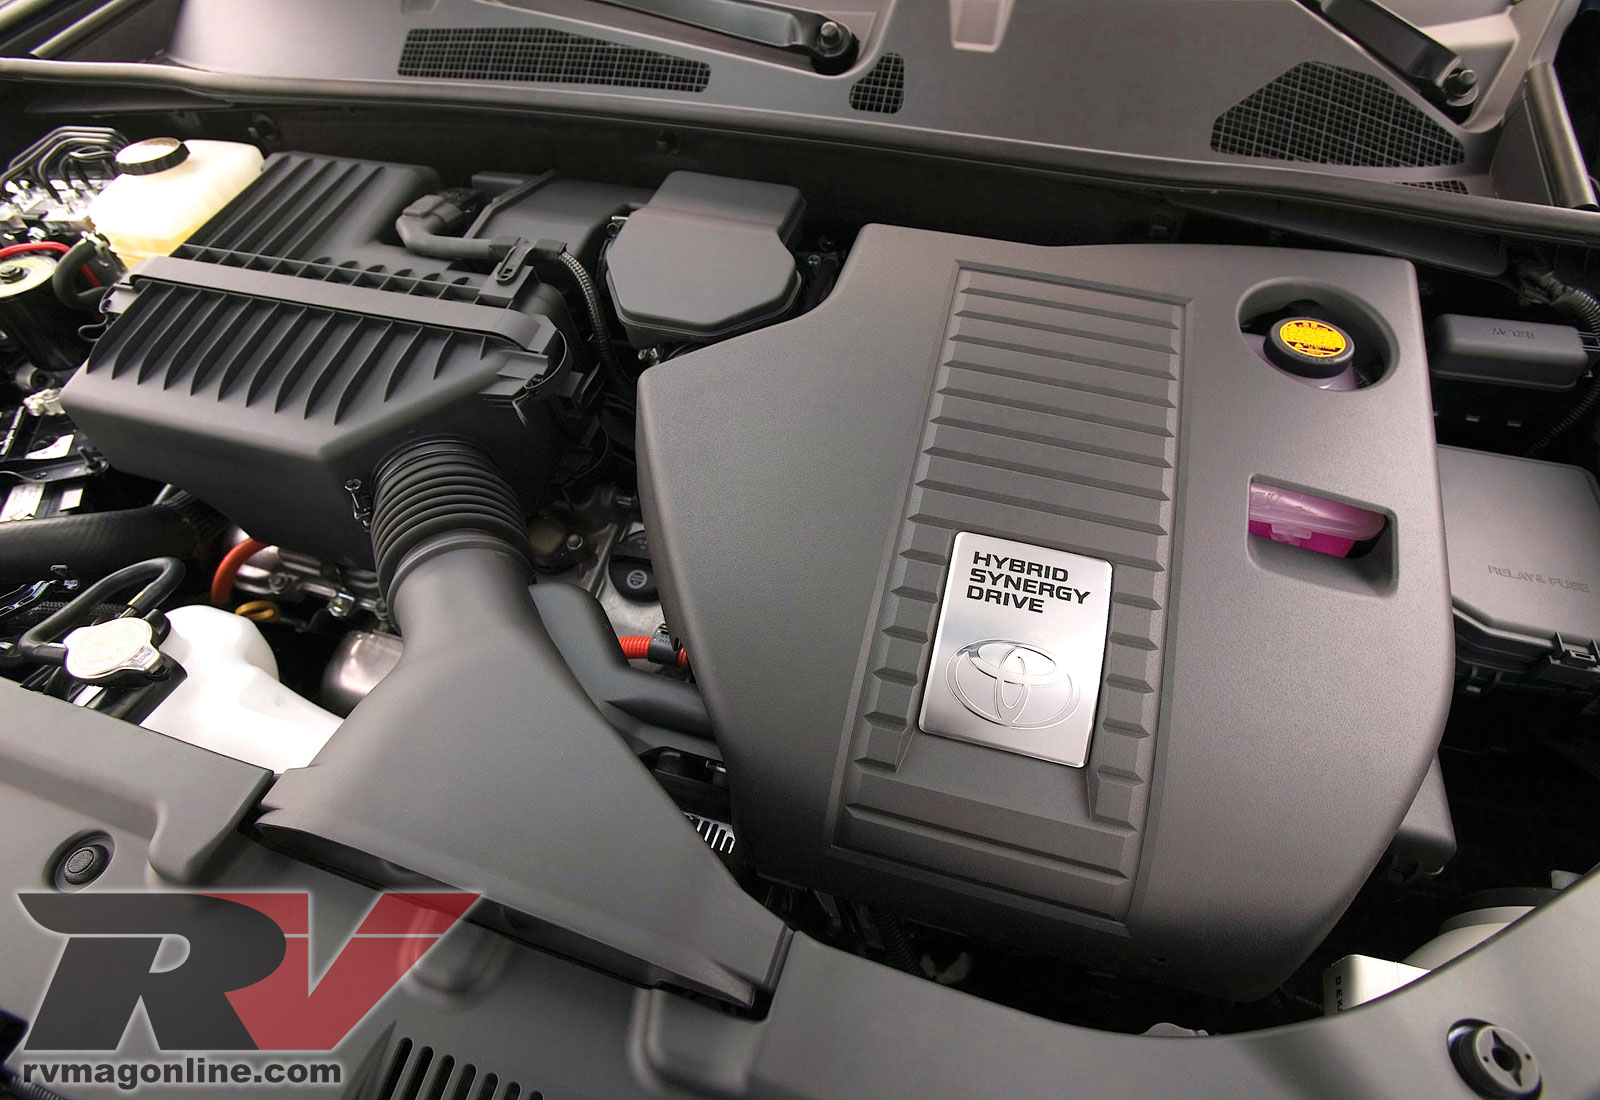 0906rv 03 2008 Toyota Highlander Hybrid Engine View Photo Gallery 4 Photos